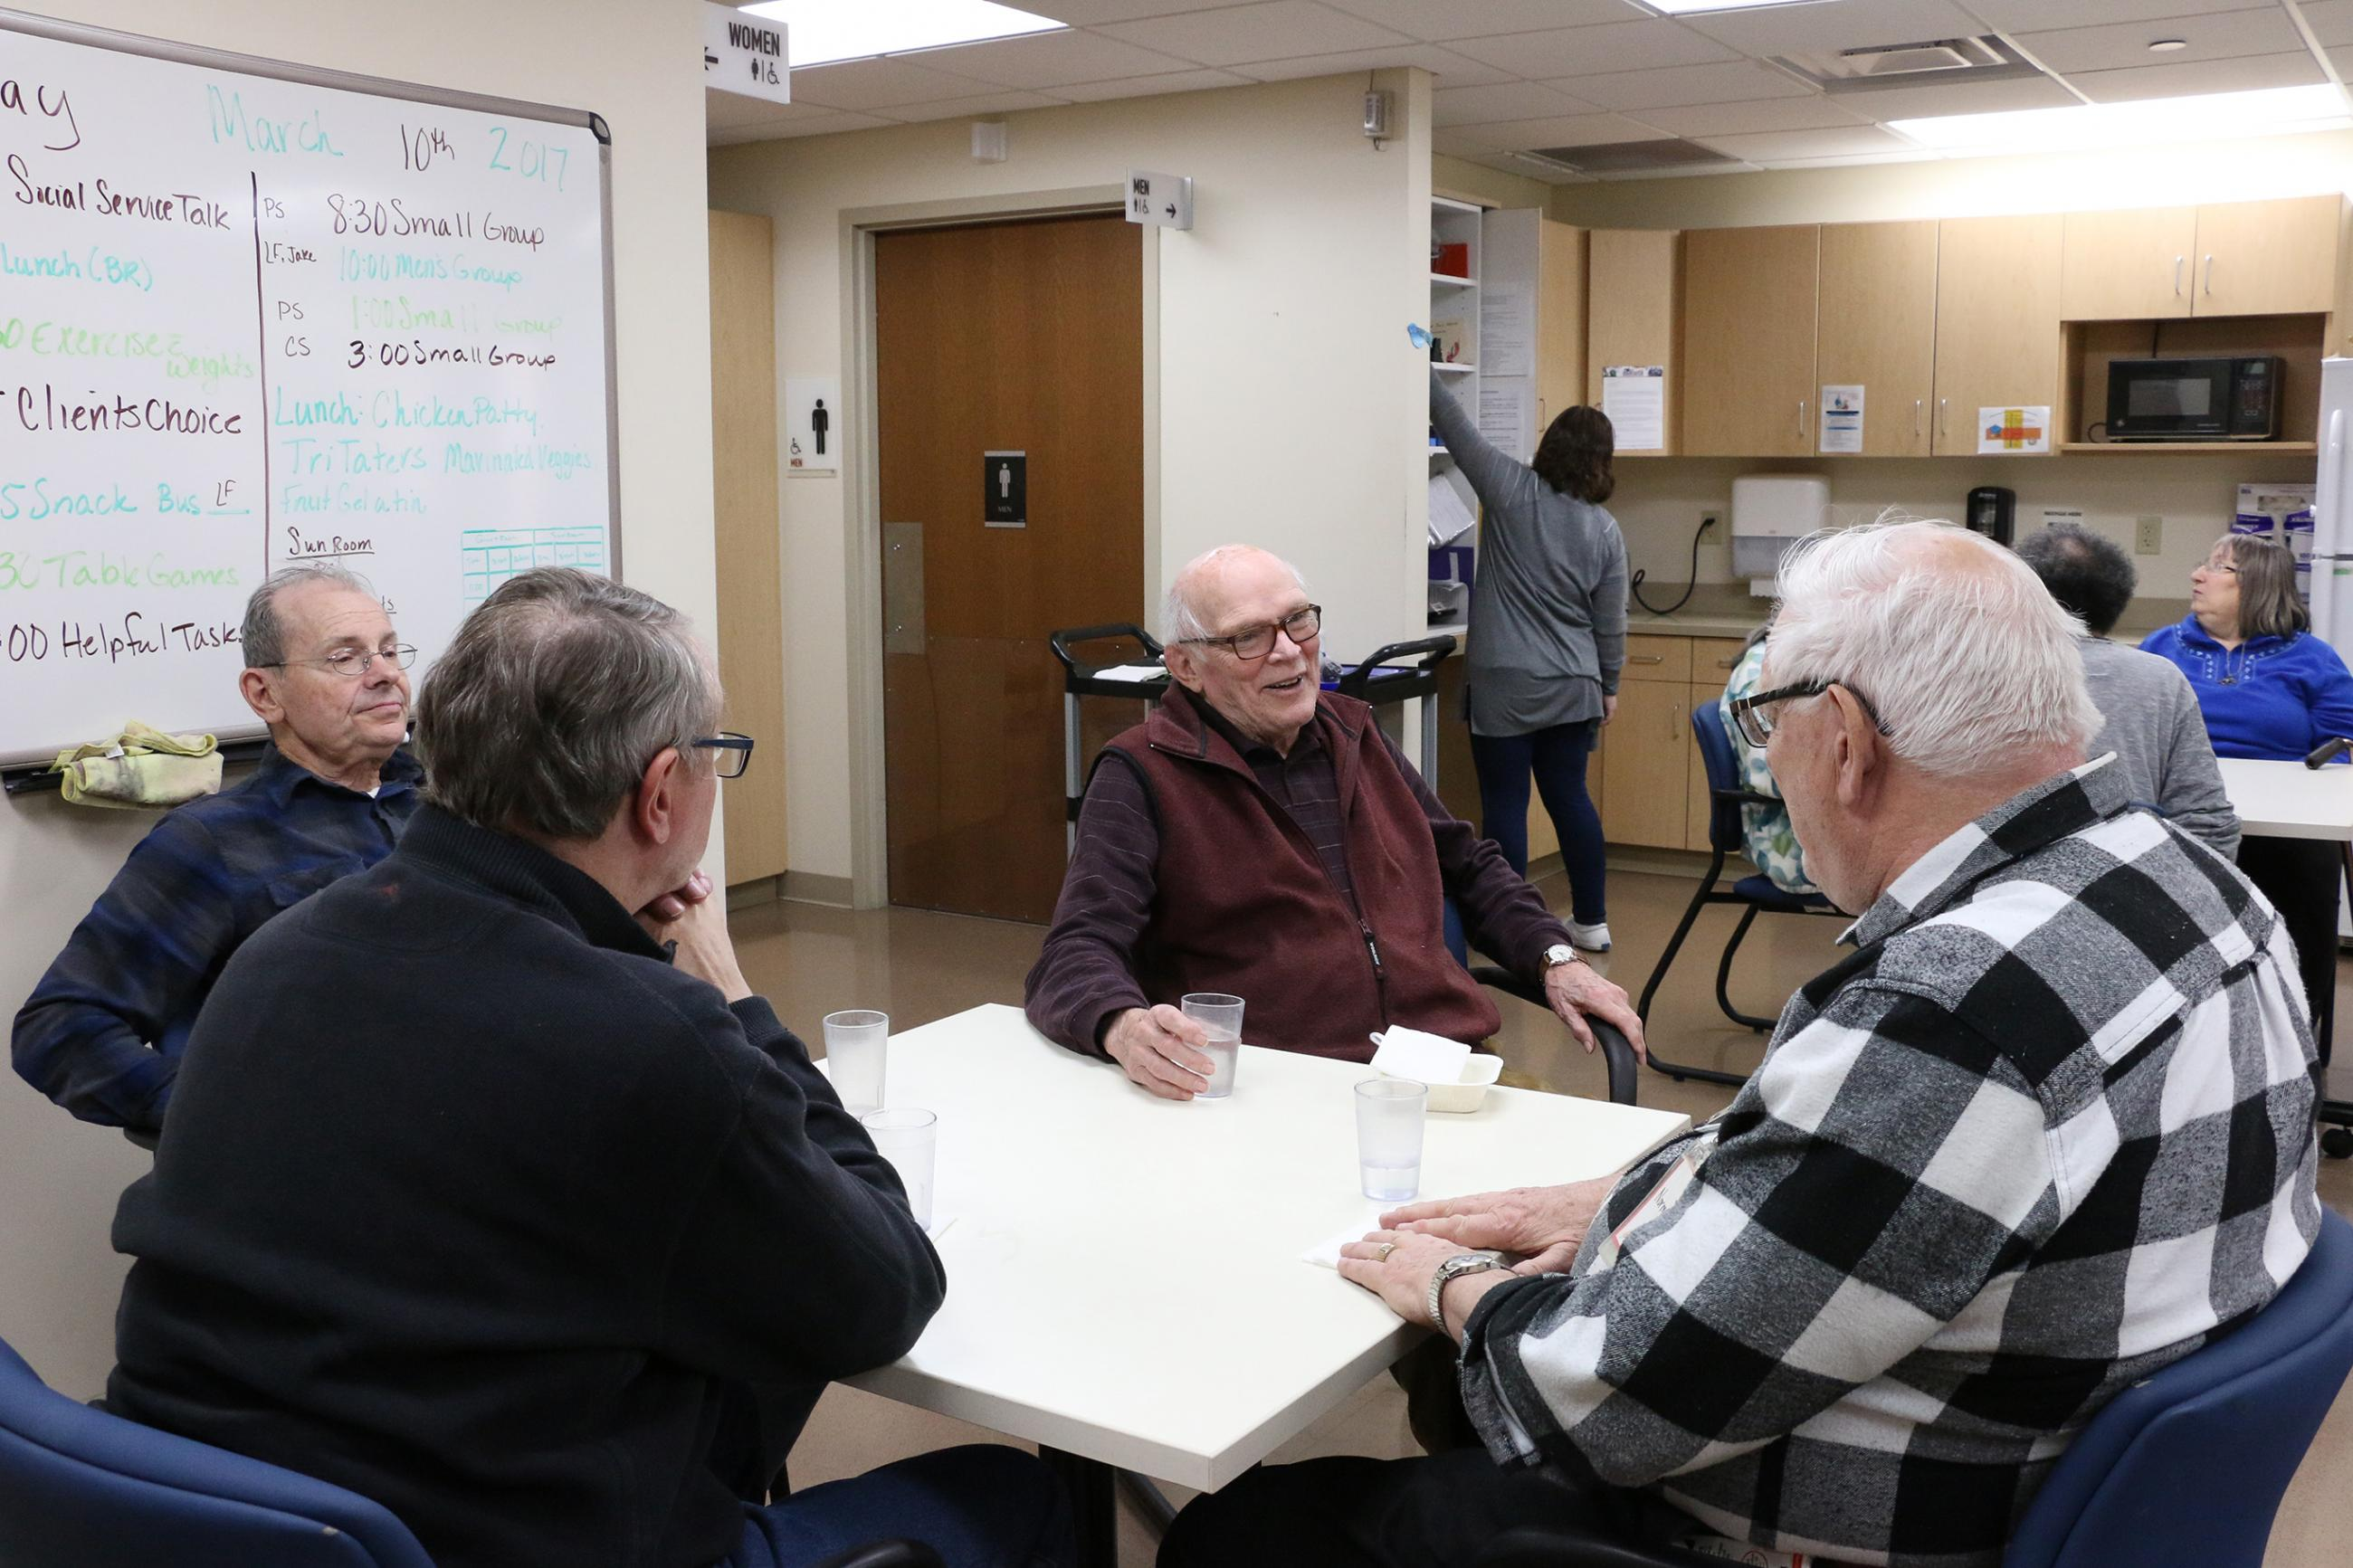 group of older adults talking, adult day health program, active programming for elders, healthy aging & caregiving, wilder foundation community center for aging